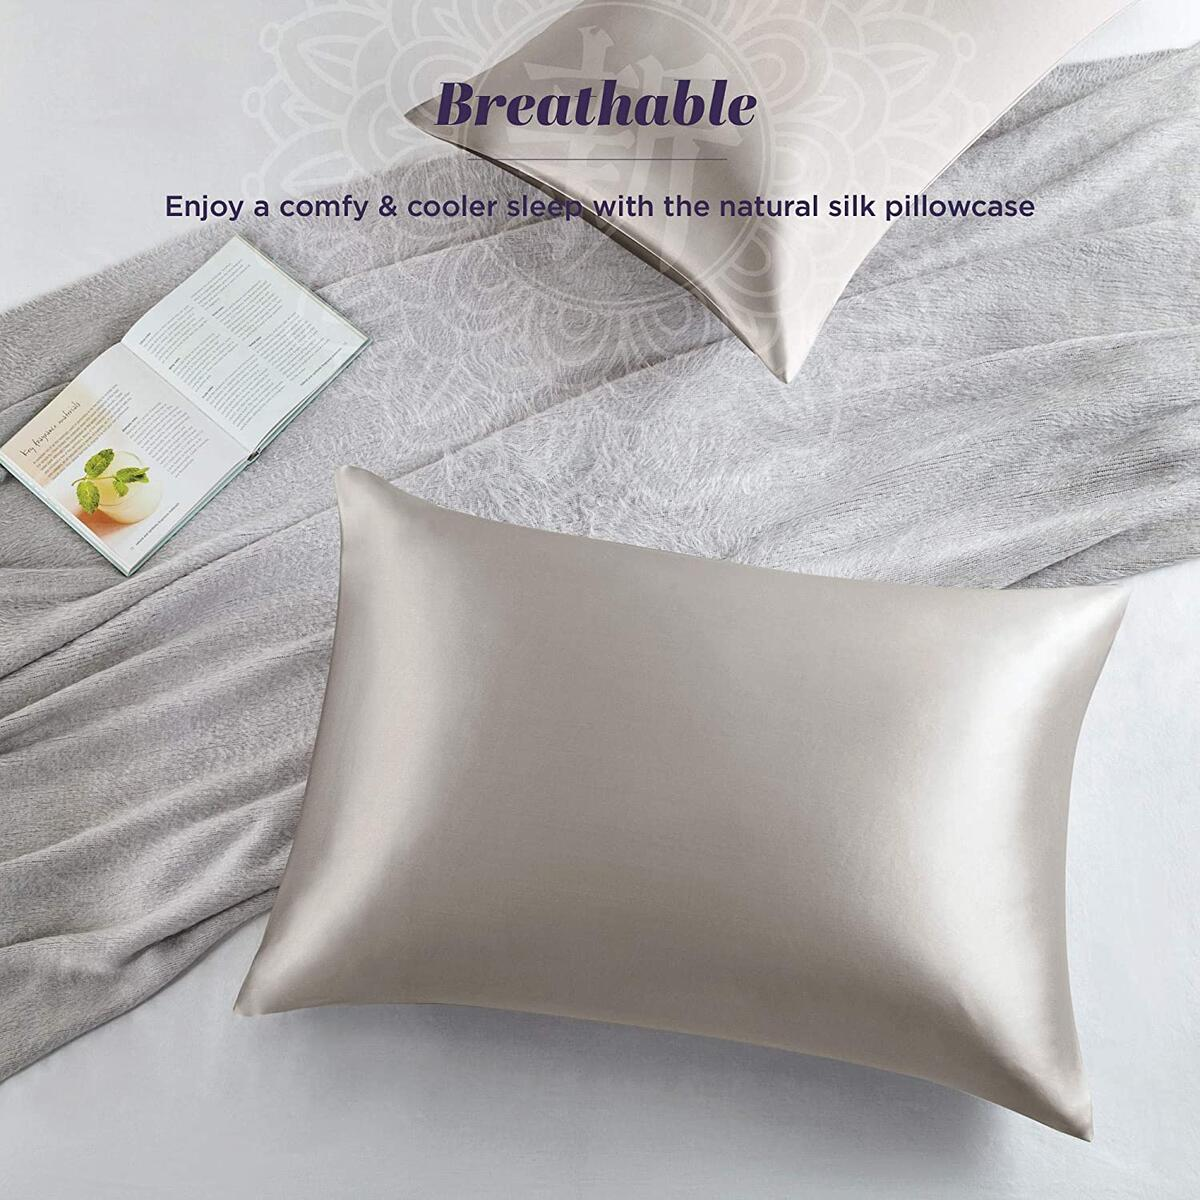 100% Pure Mulberry Brown Silk Pillowcase for Hair and Skin | Premium 25 Momme Organic Worm Silk Pillow Case, Hypoallergenic Antibacterial with Hidden Zipper - 2 Pack (King 20x36 Taupe)